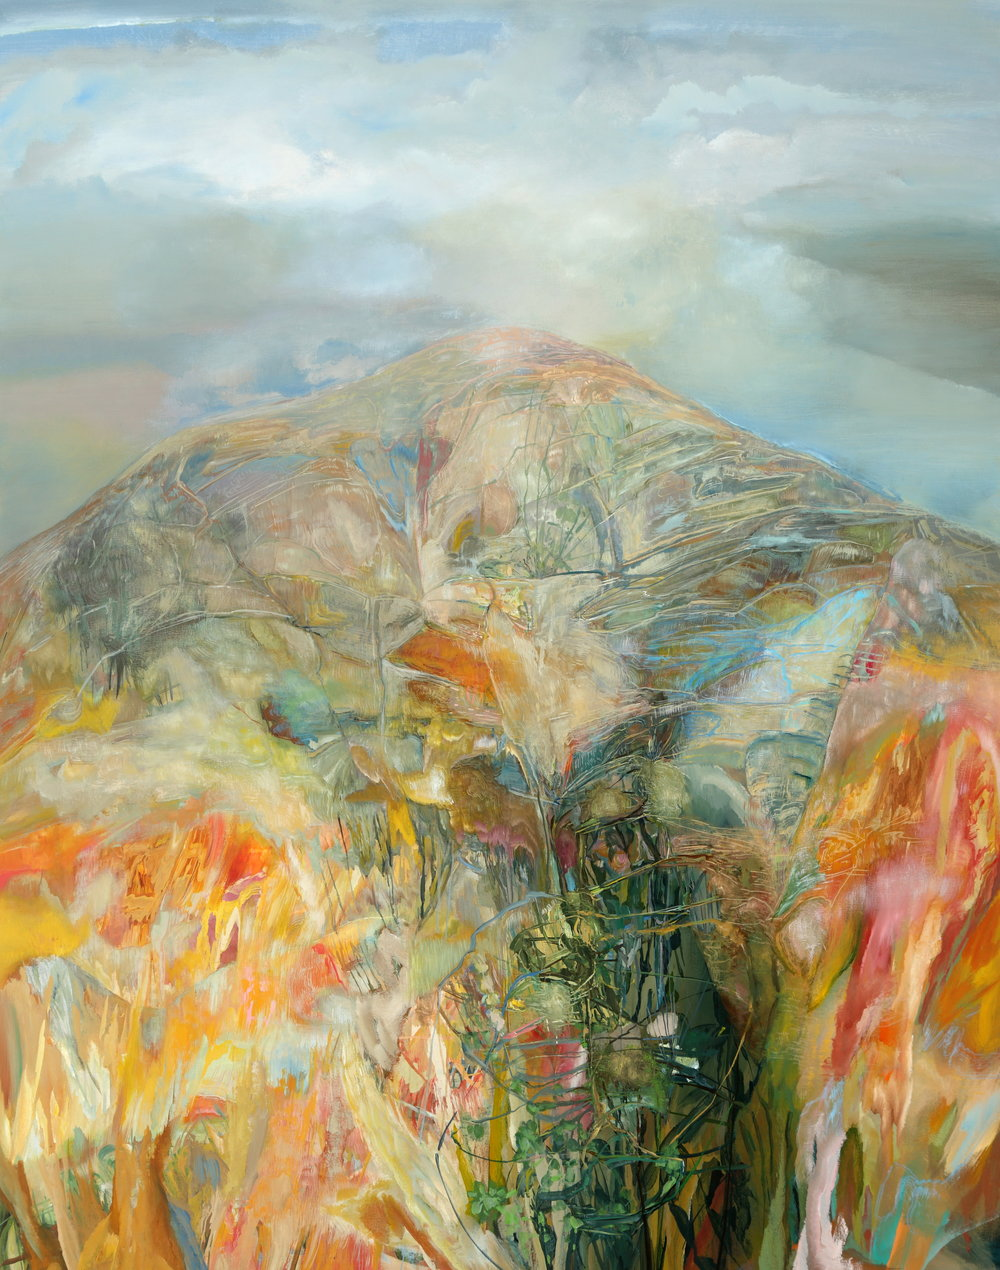 Elementary Geography, Mountain, 2014, 84 x 66 inches, acrylic on canvas